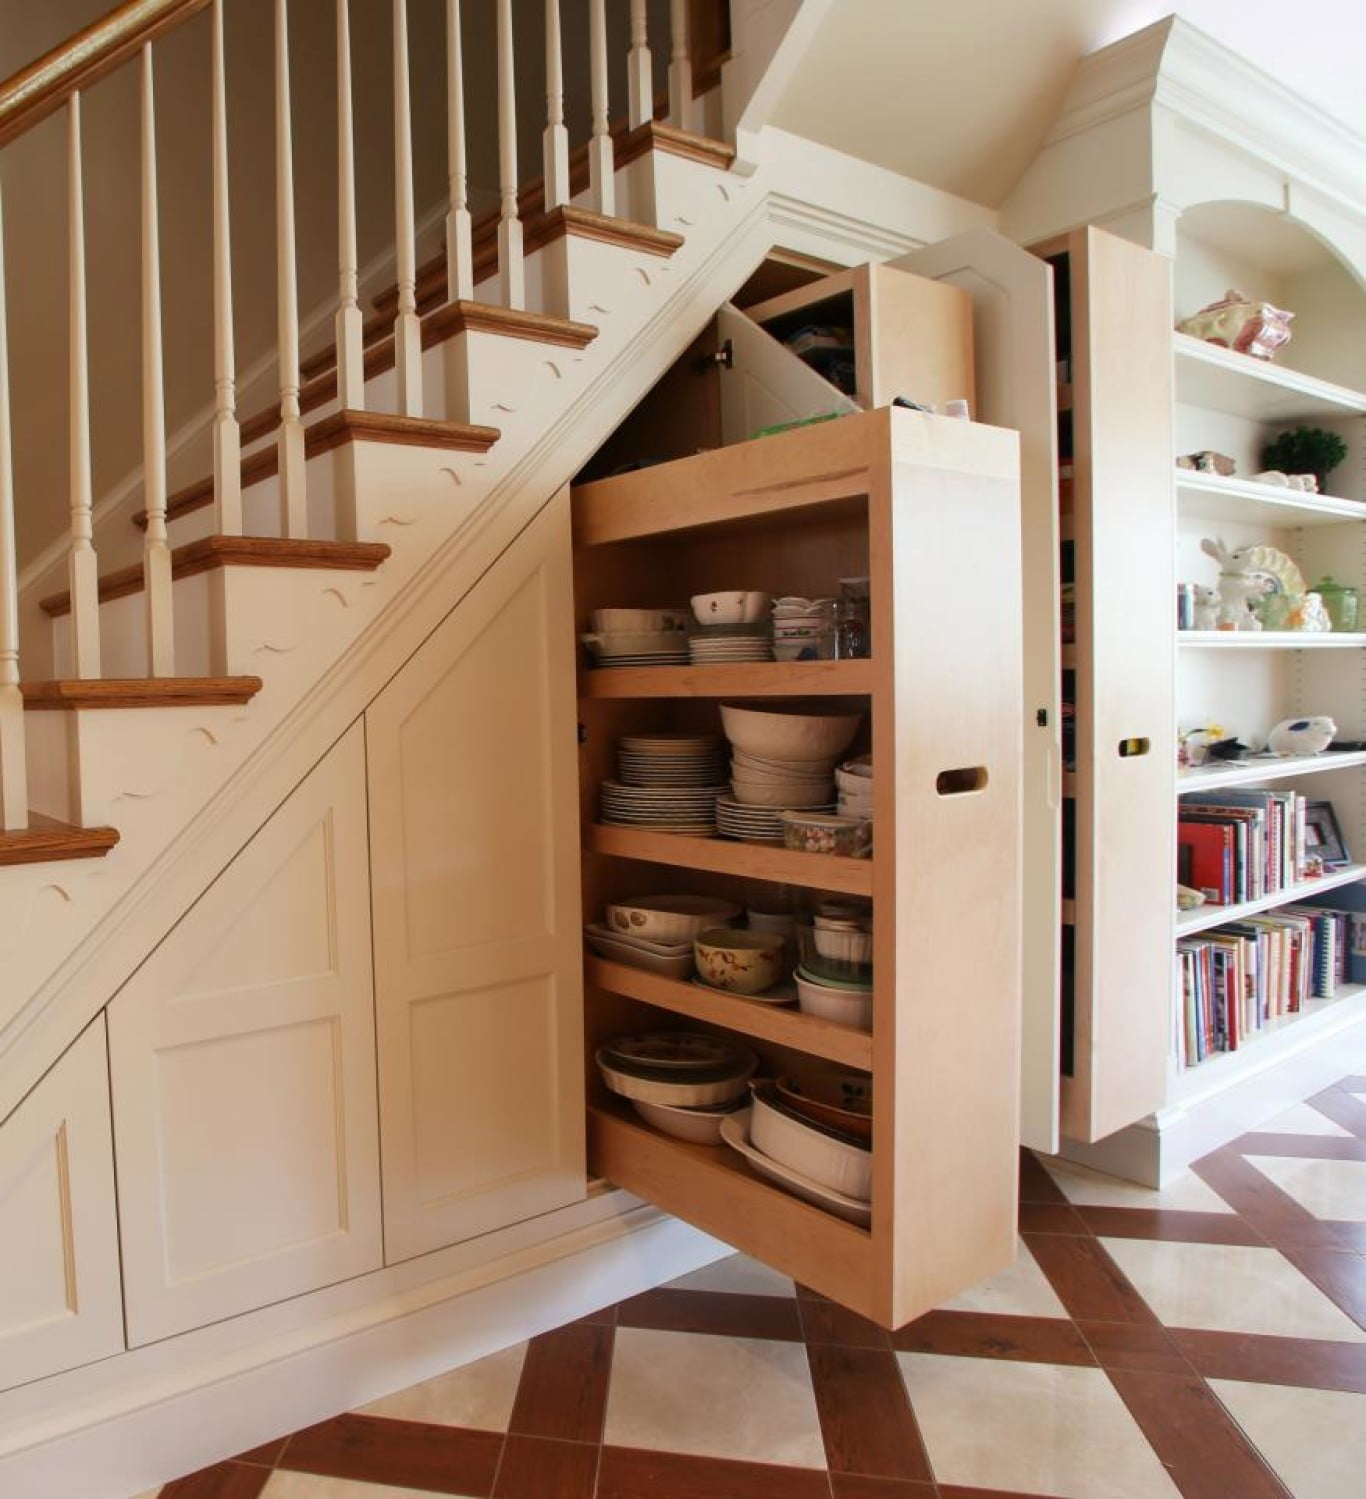 Bespoke Under Stairs Shelving